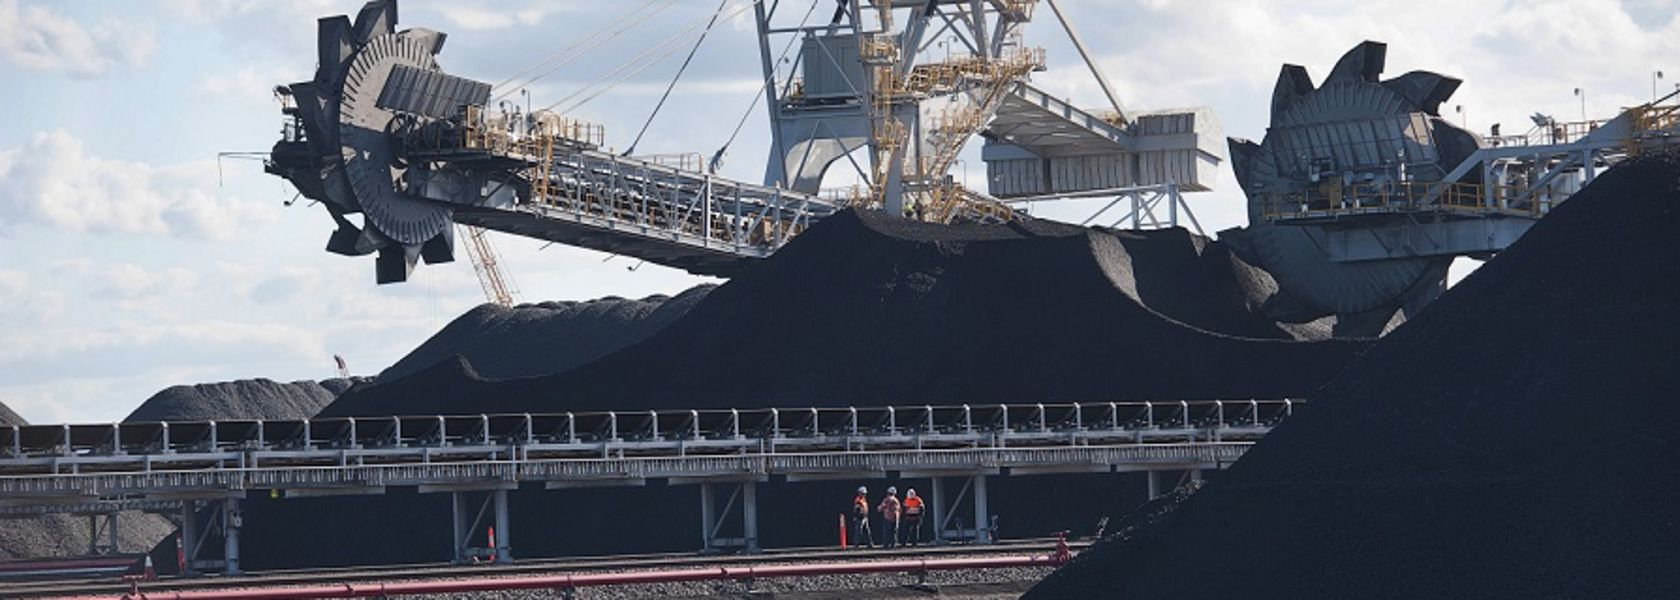 Hunter Valley to lose 35 coal mines by 2040: LTGA